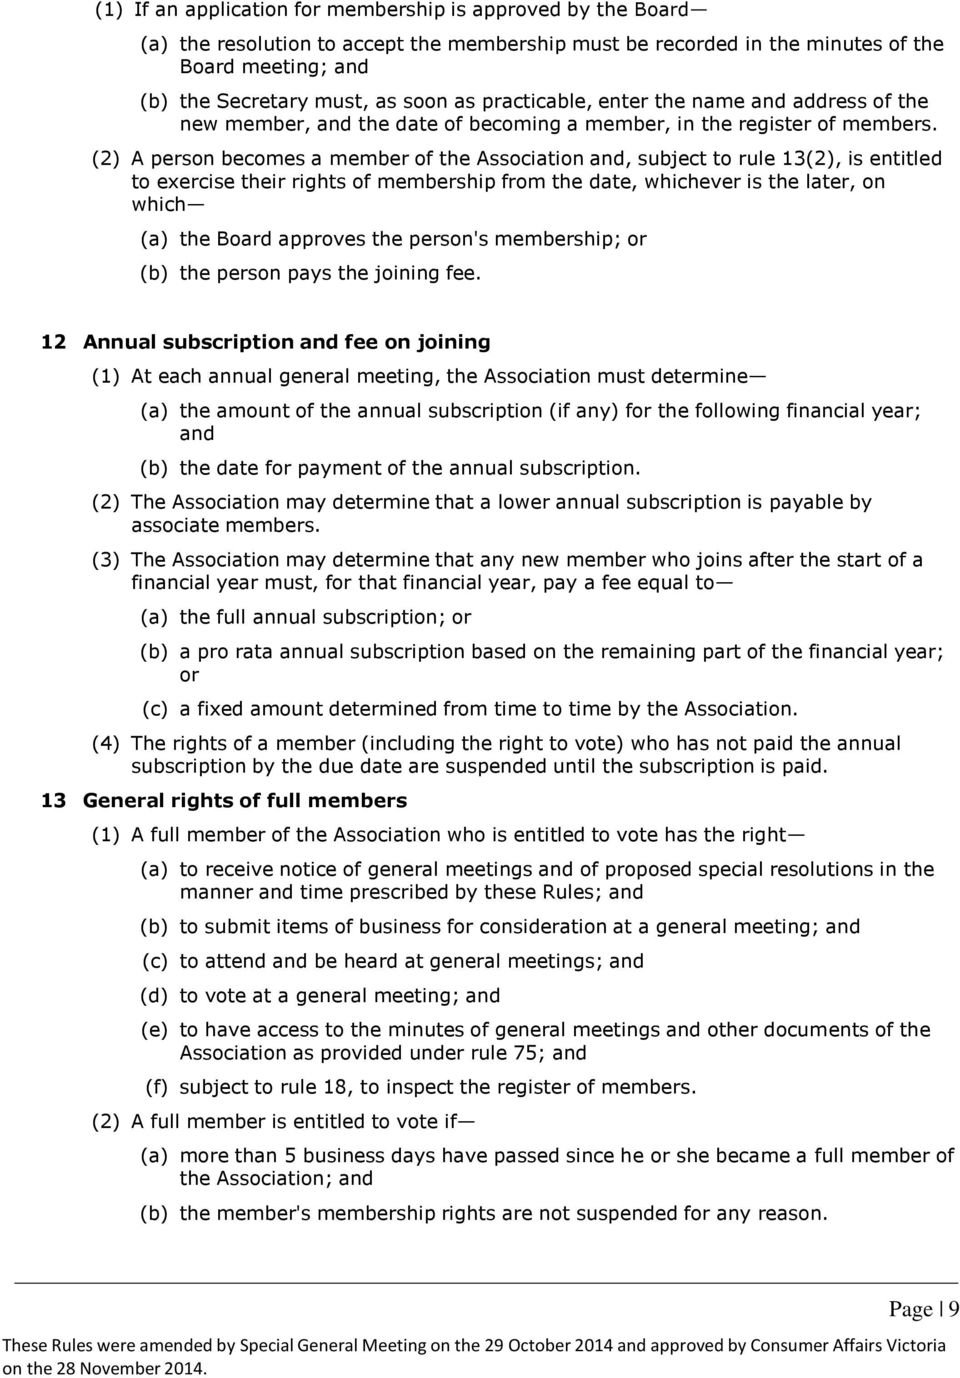 (2) A person becomes a member of the Association and, subject to rule 13(2), is entitled to exercise their rights of membership from the date, whichever is the later, on which (a) the Board approves